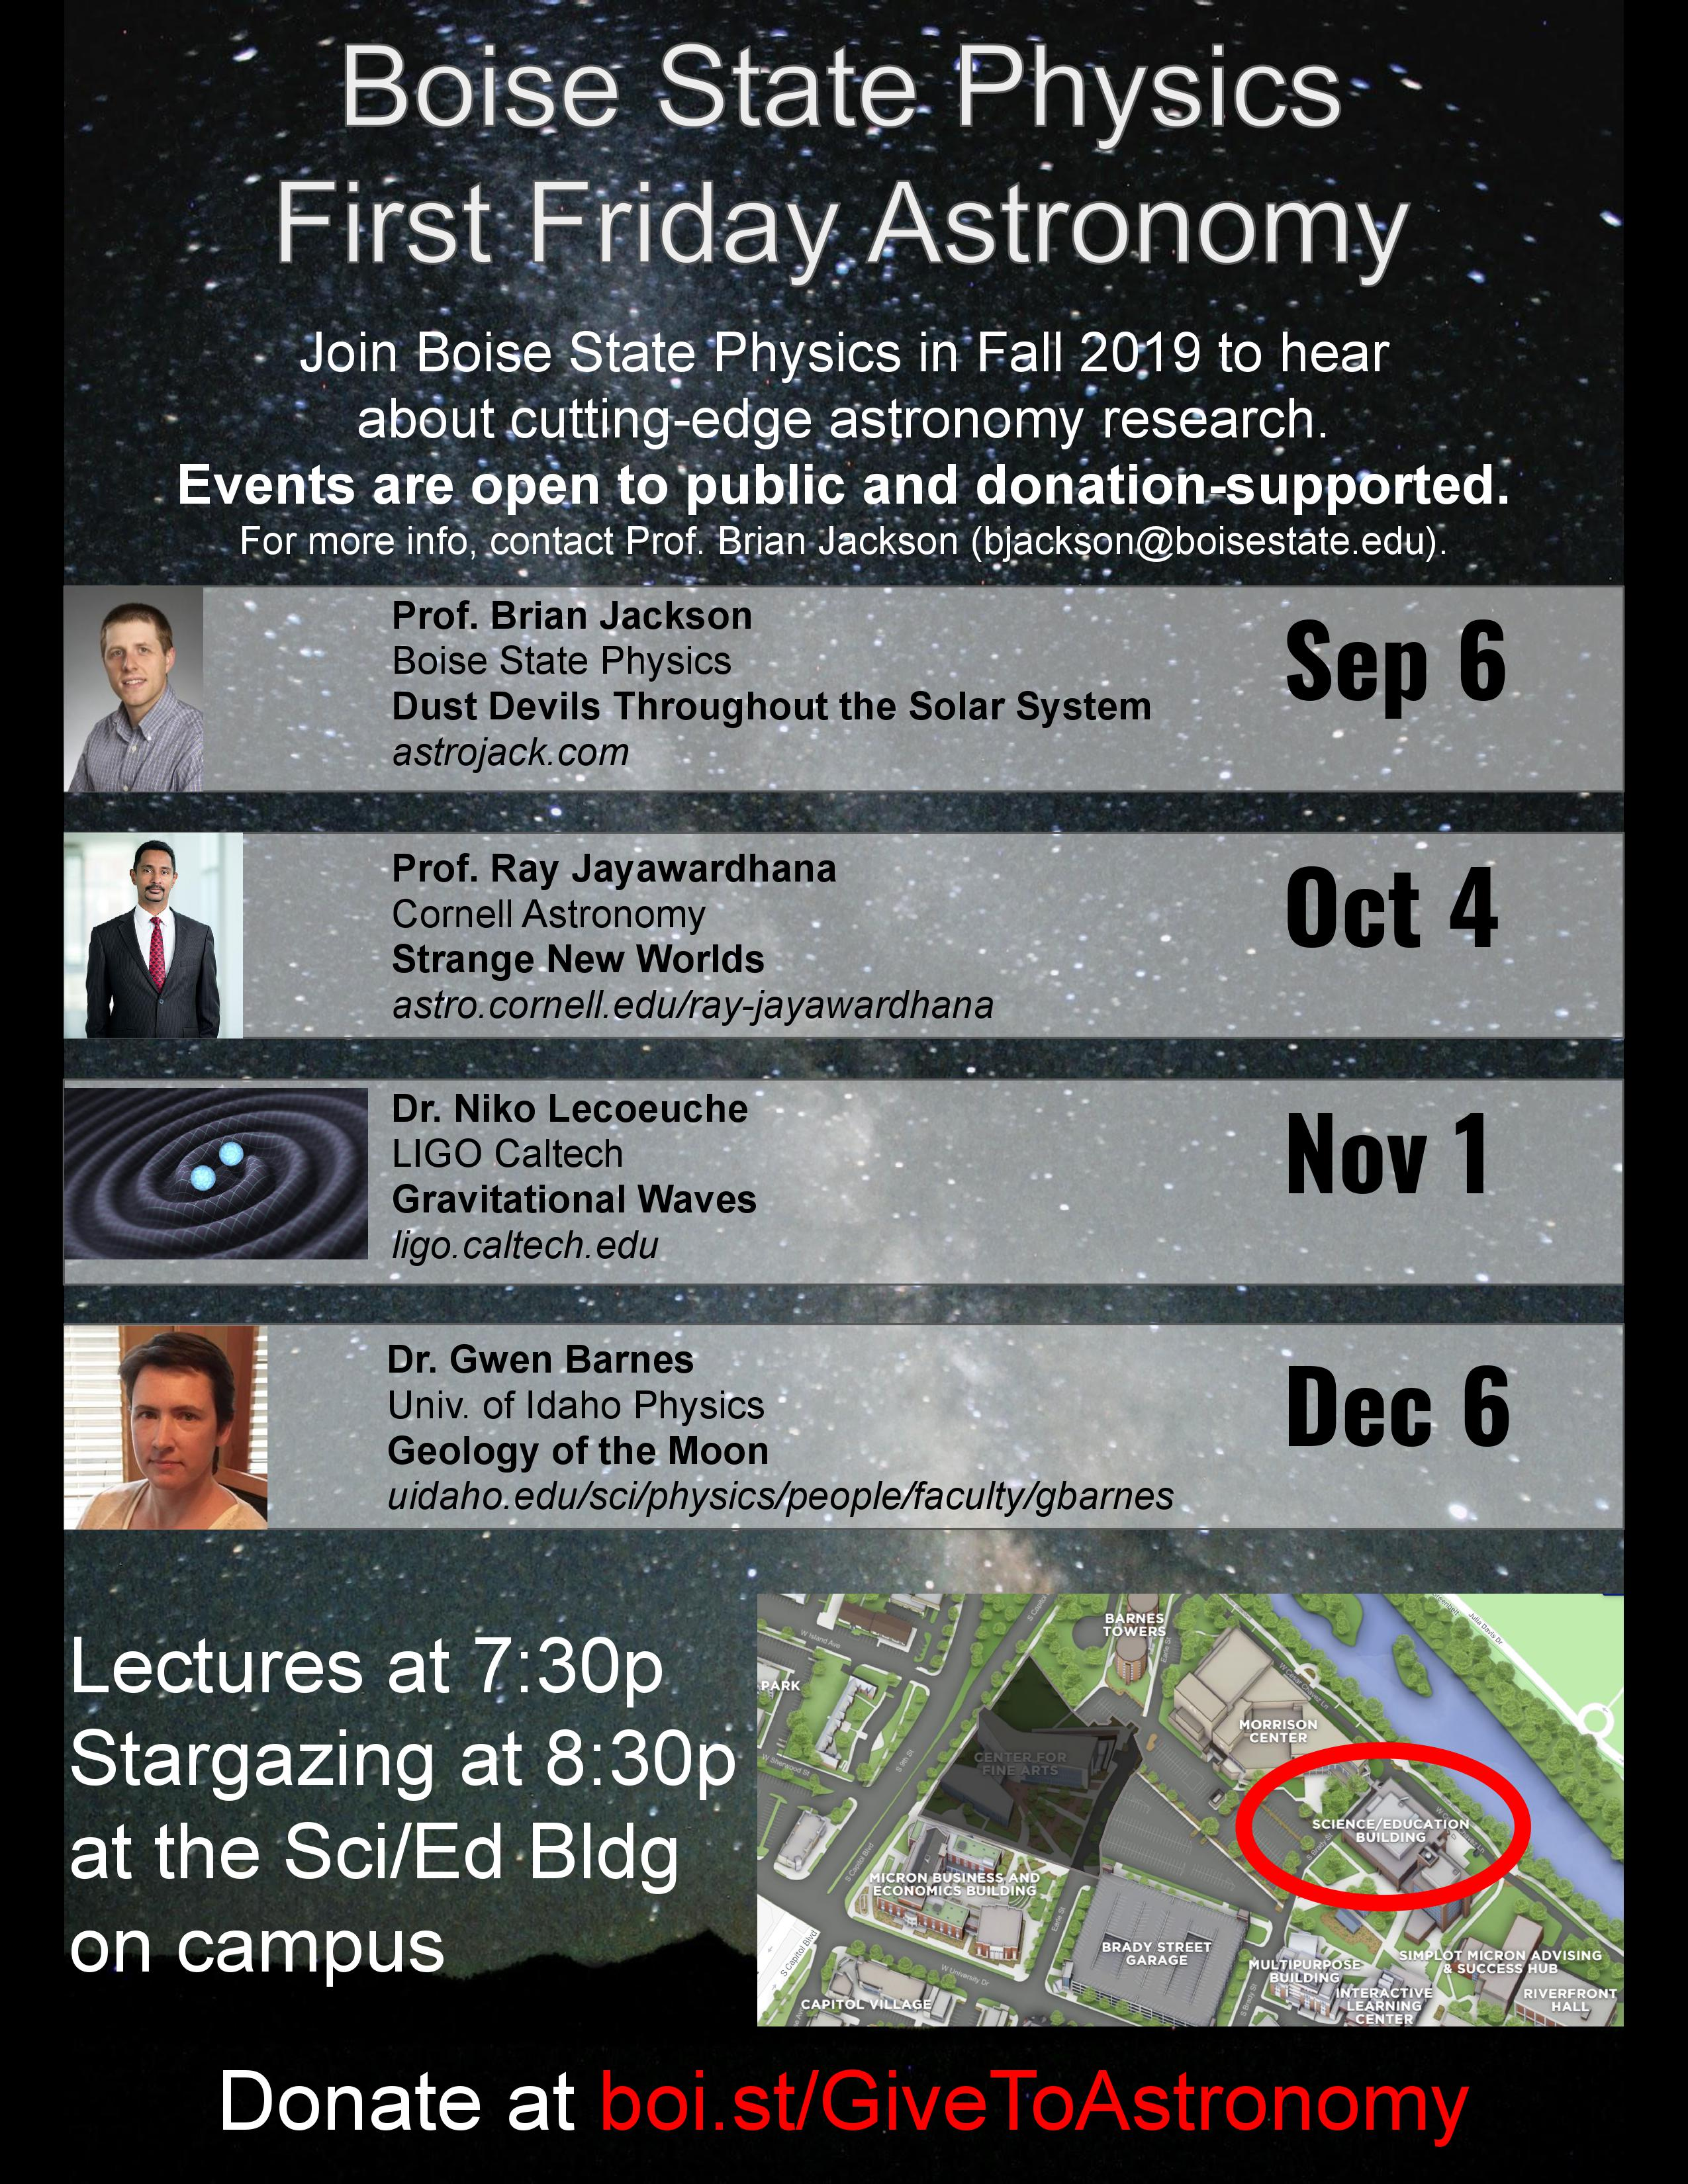 Announcement poster for astronomy events